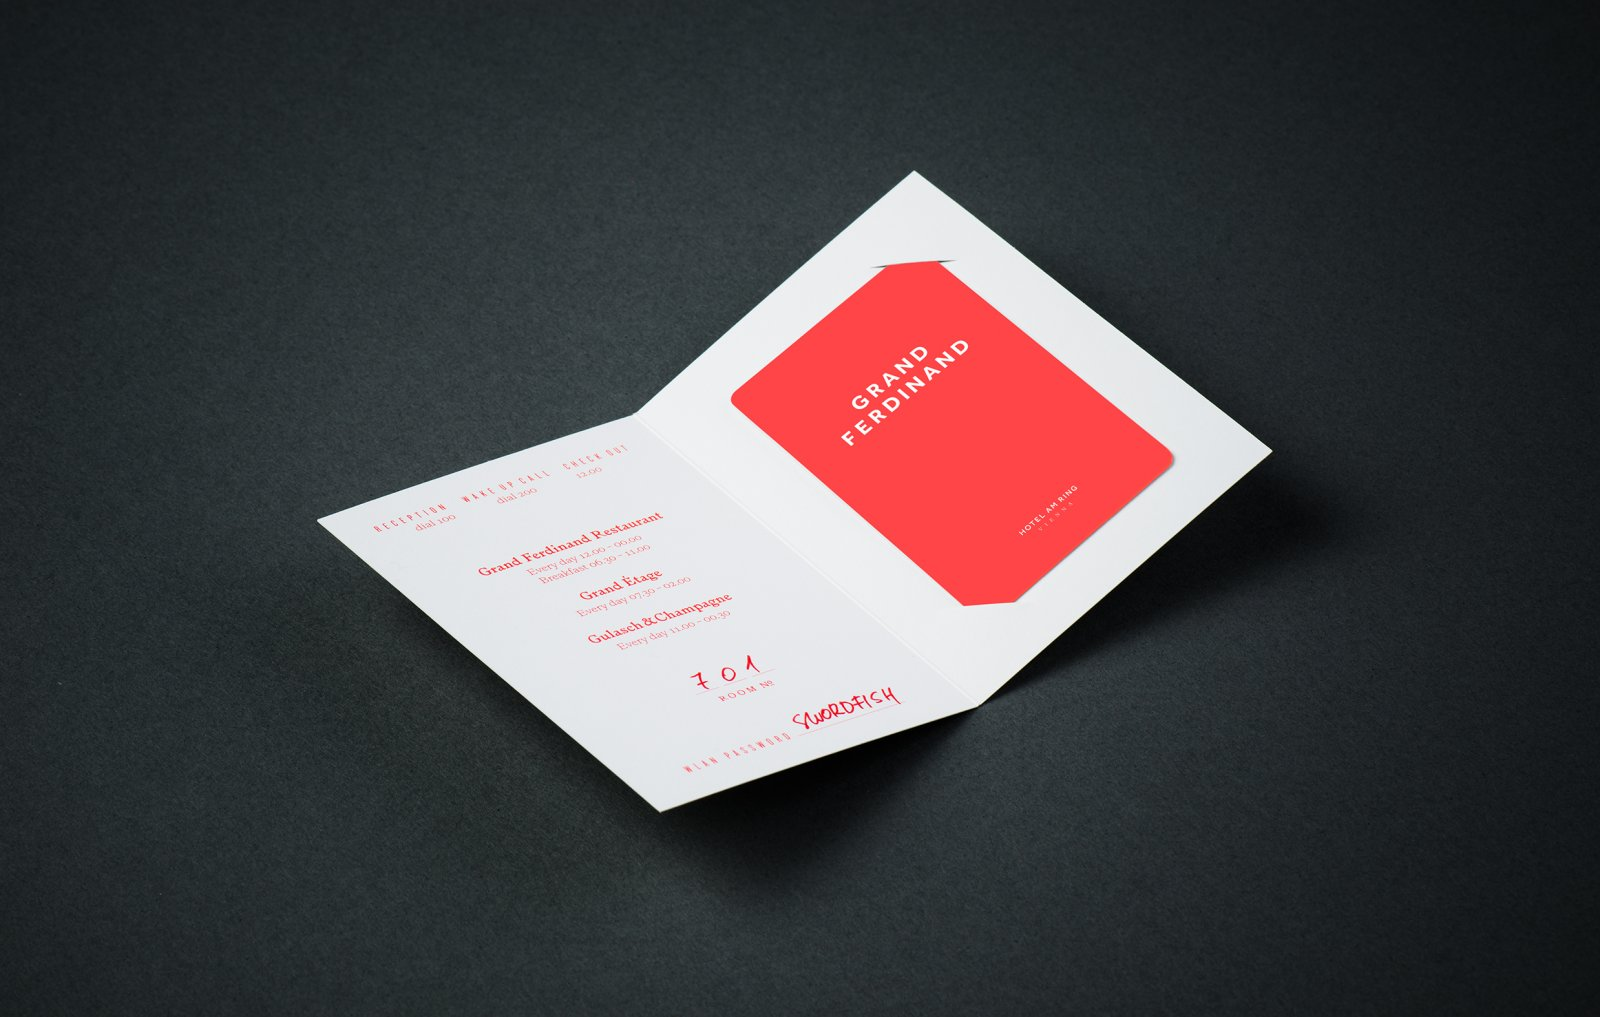 Brand identity and keycard sleeve for Vienna's Grand Ferdinand hotel by Austrian graphic design studio Moodley